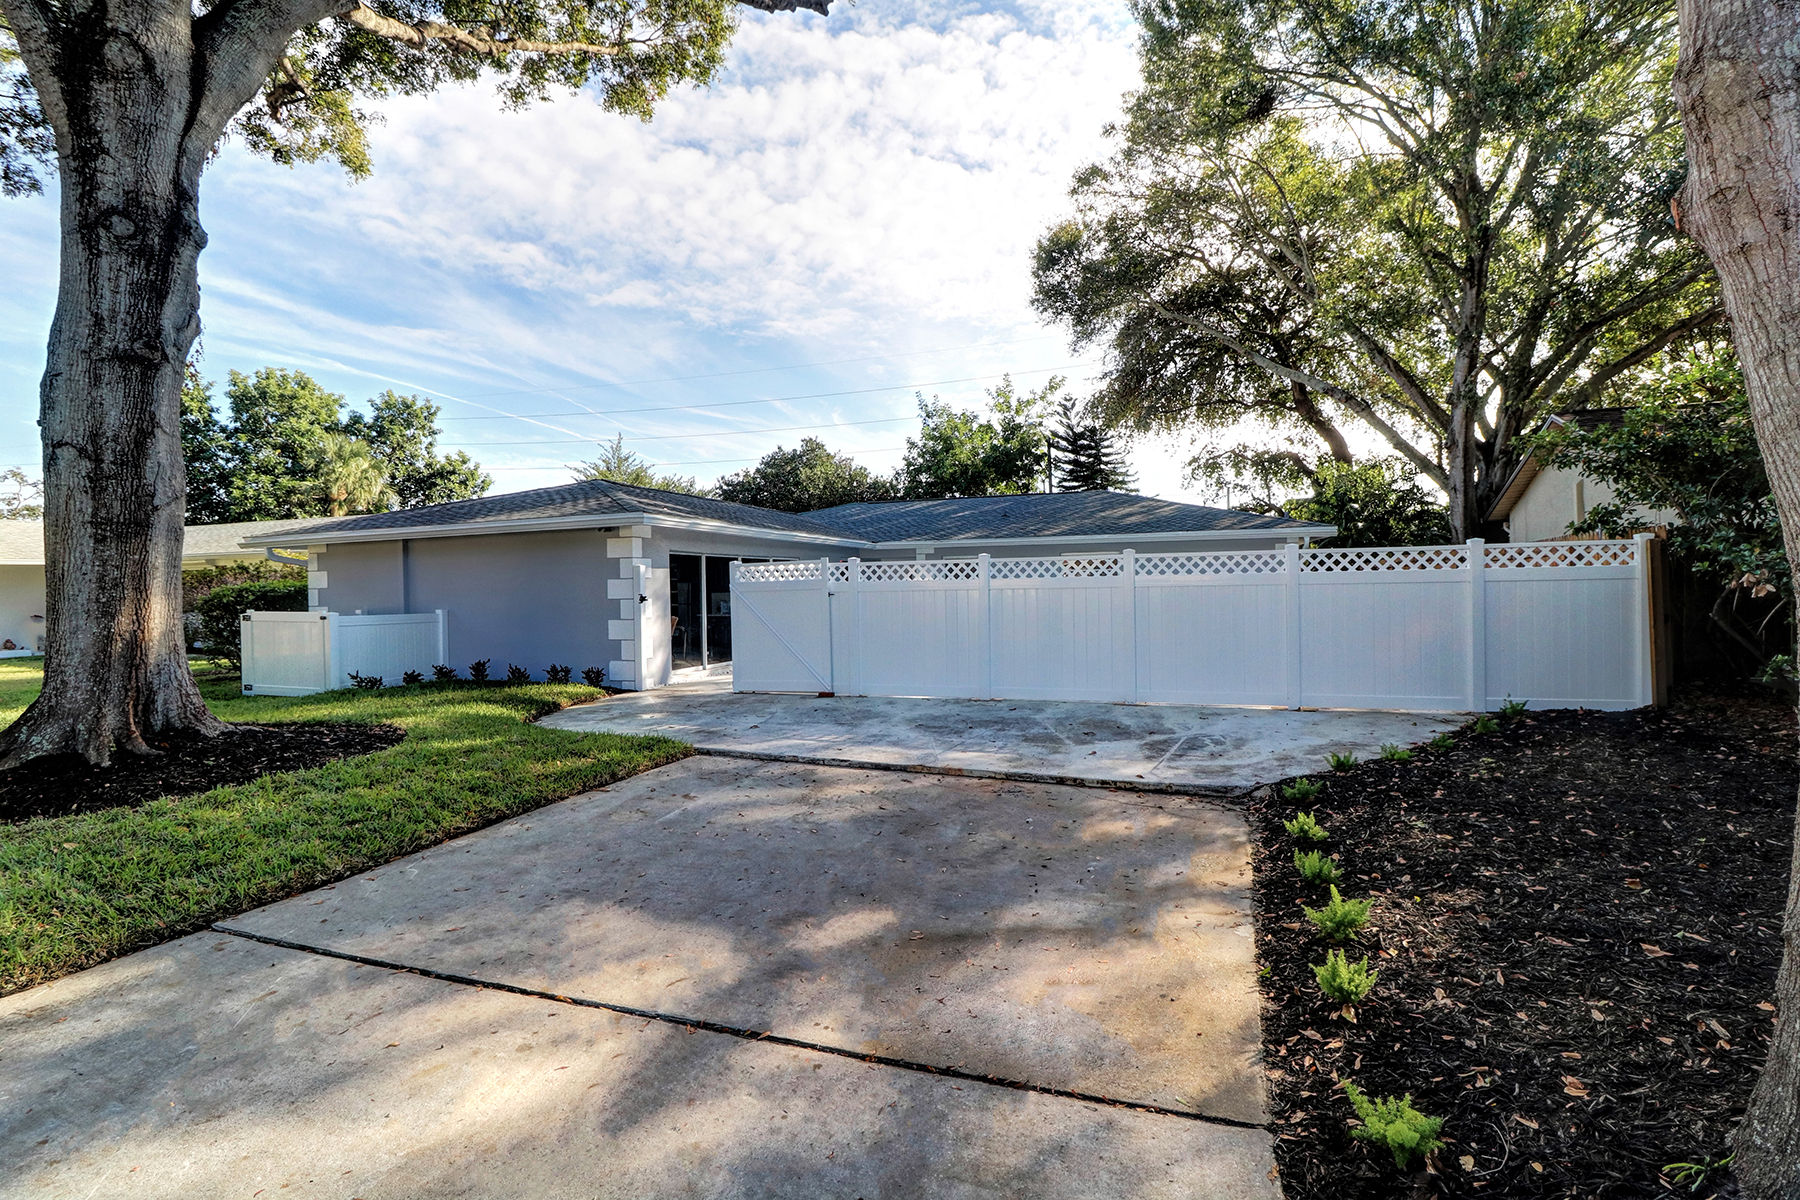 Single Family Home for Sale at CLEARWATER 2363 Pineland Ln Clearwater, Florida, 33763 United States